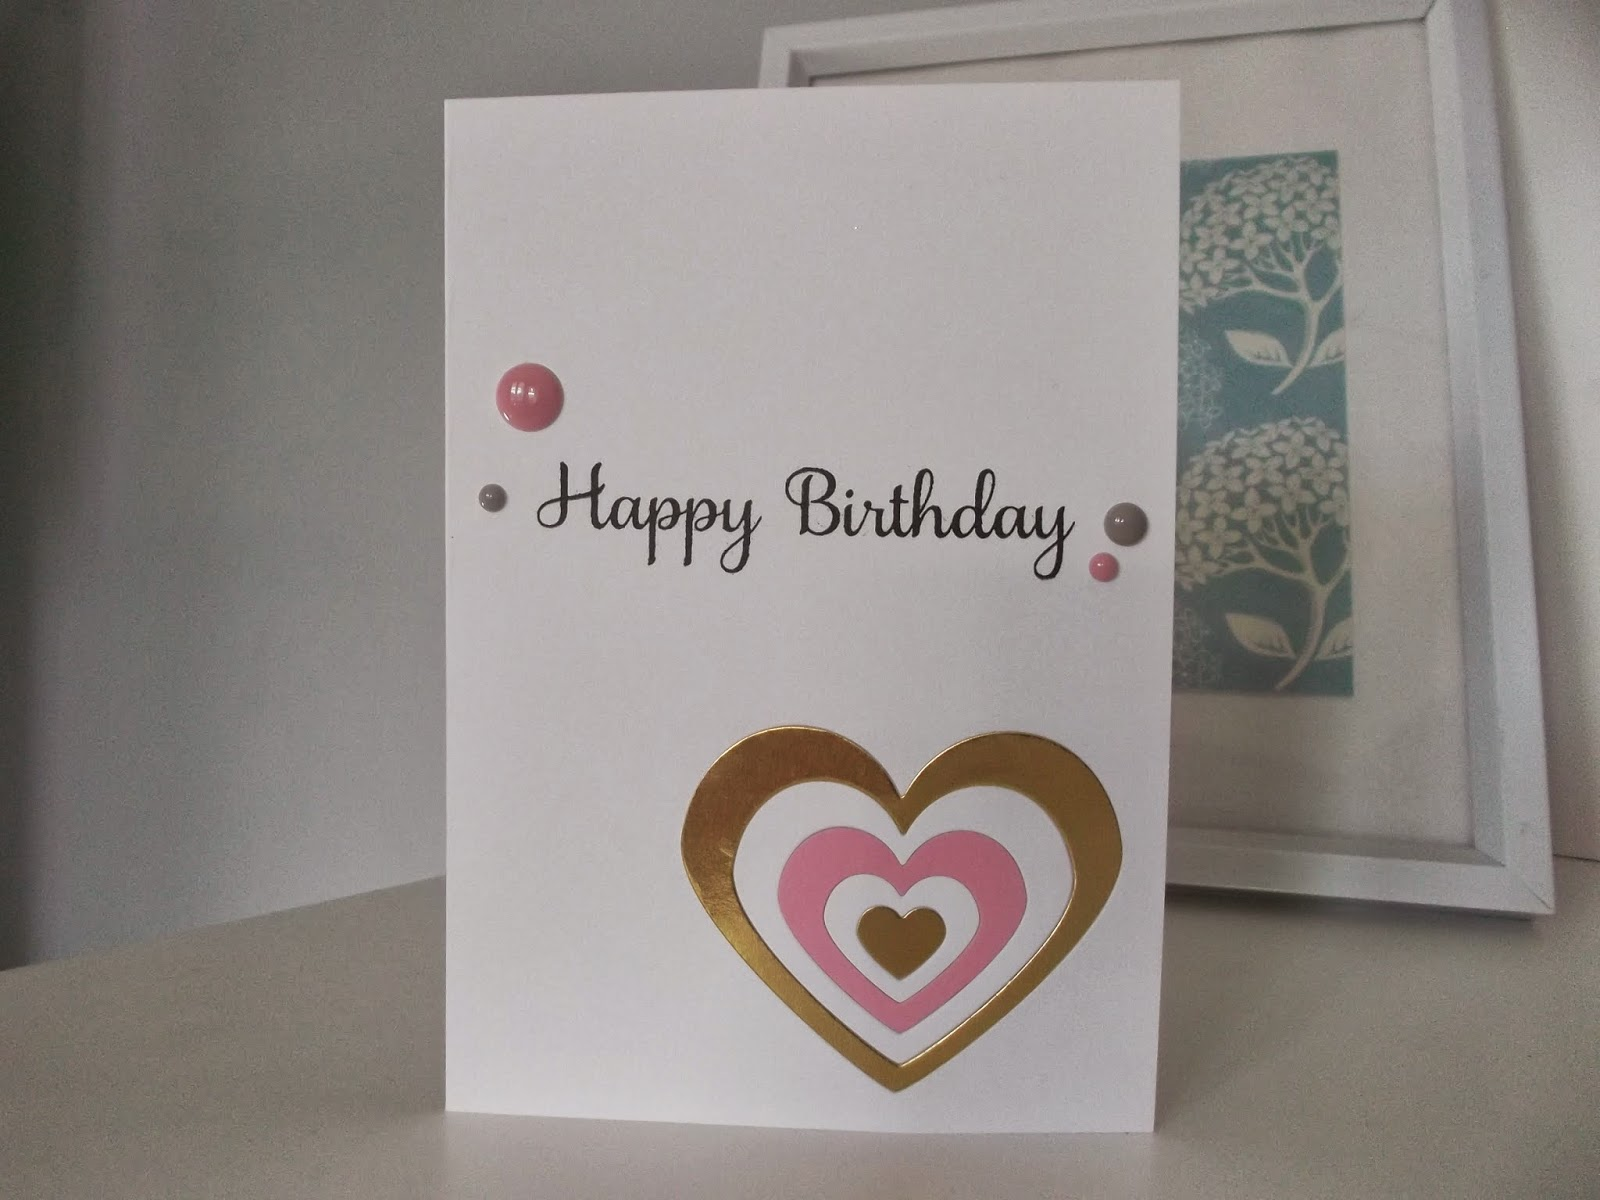 I Really Hope You Like This Card Anita Immediately Thought Of Design When Knew It Was Your Birthday Decided To Use A Technique Inlay Die Cut